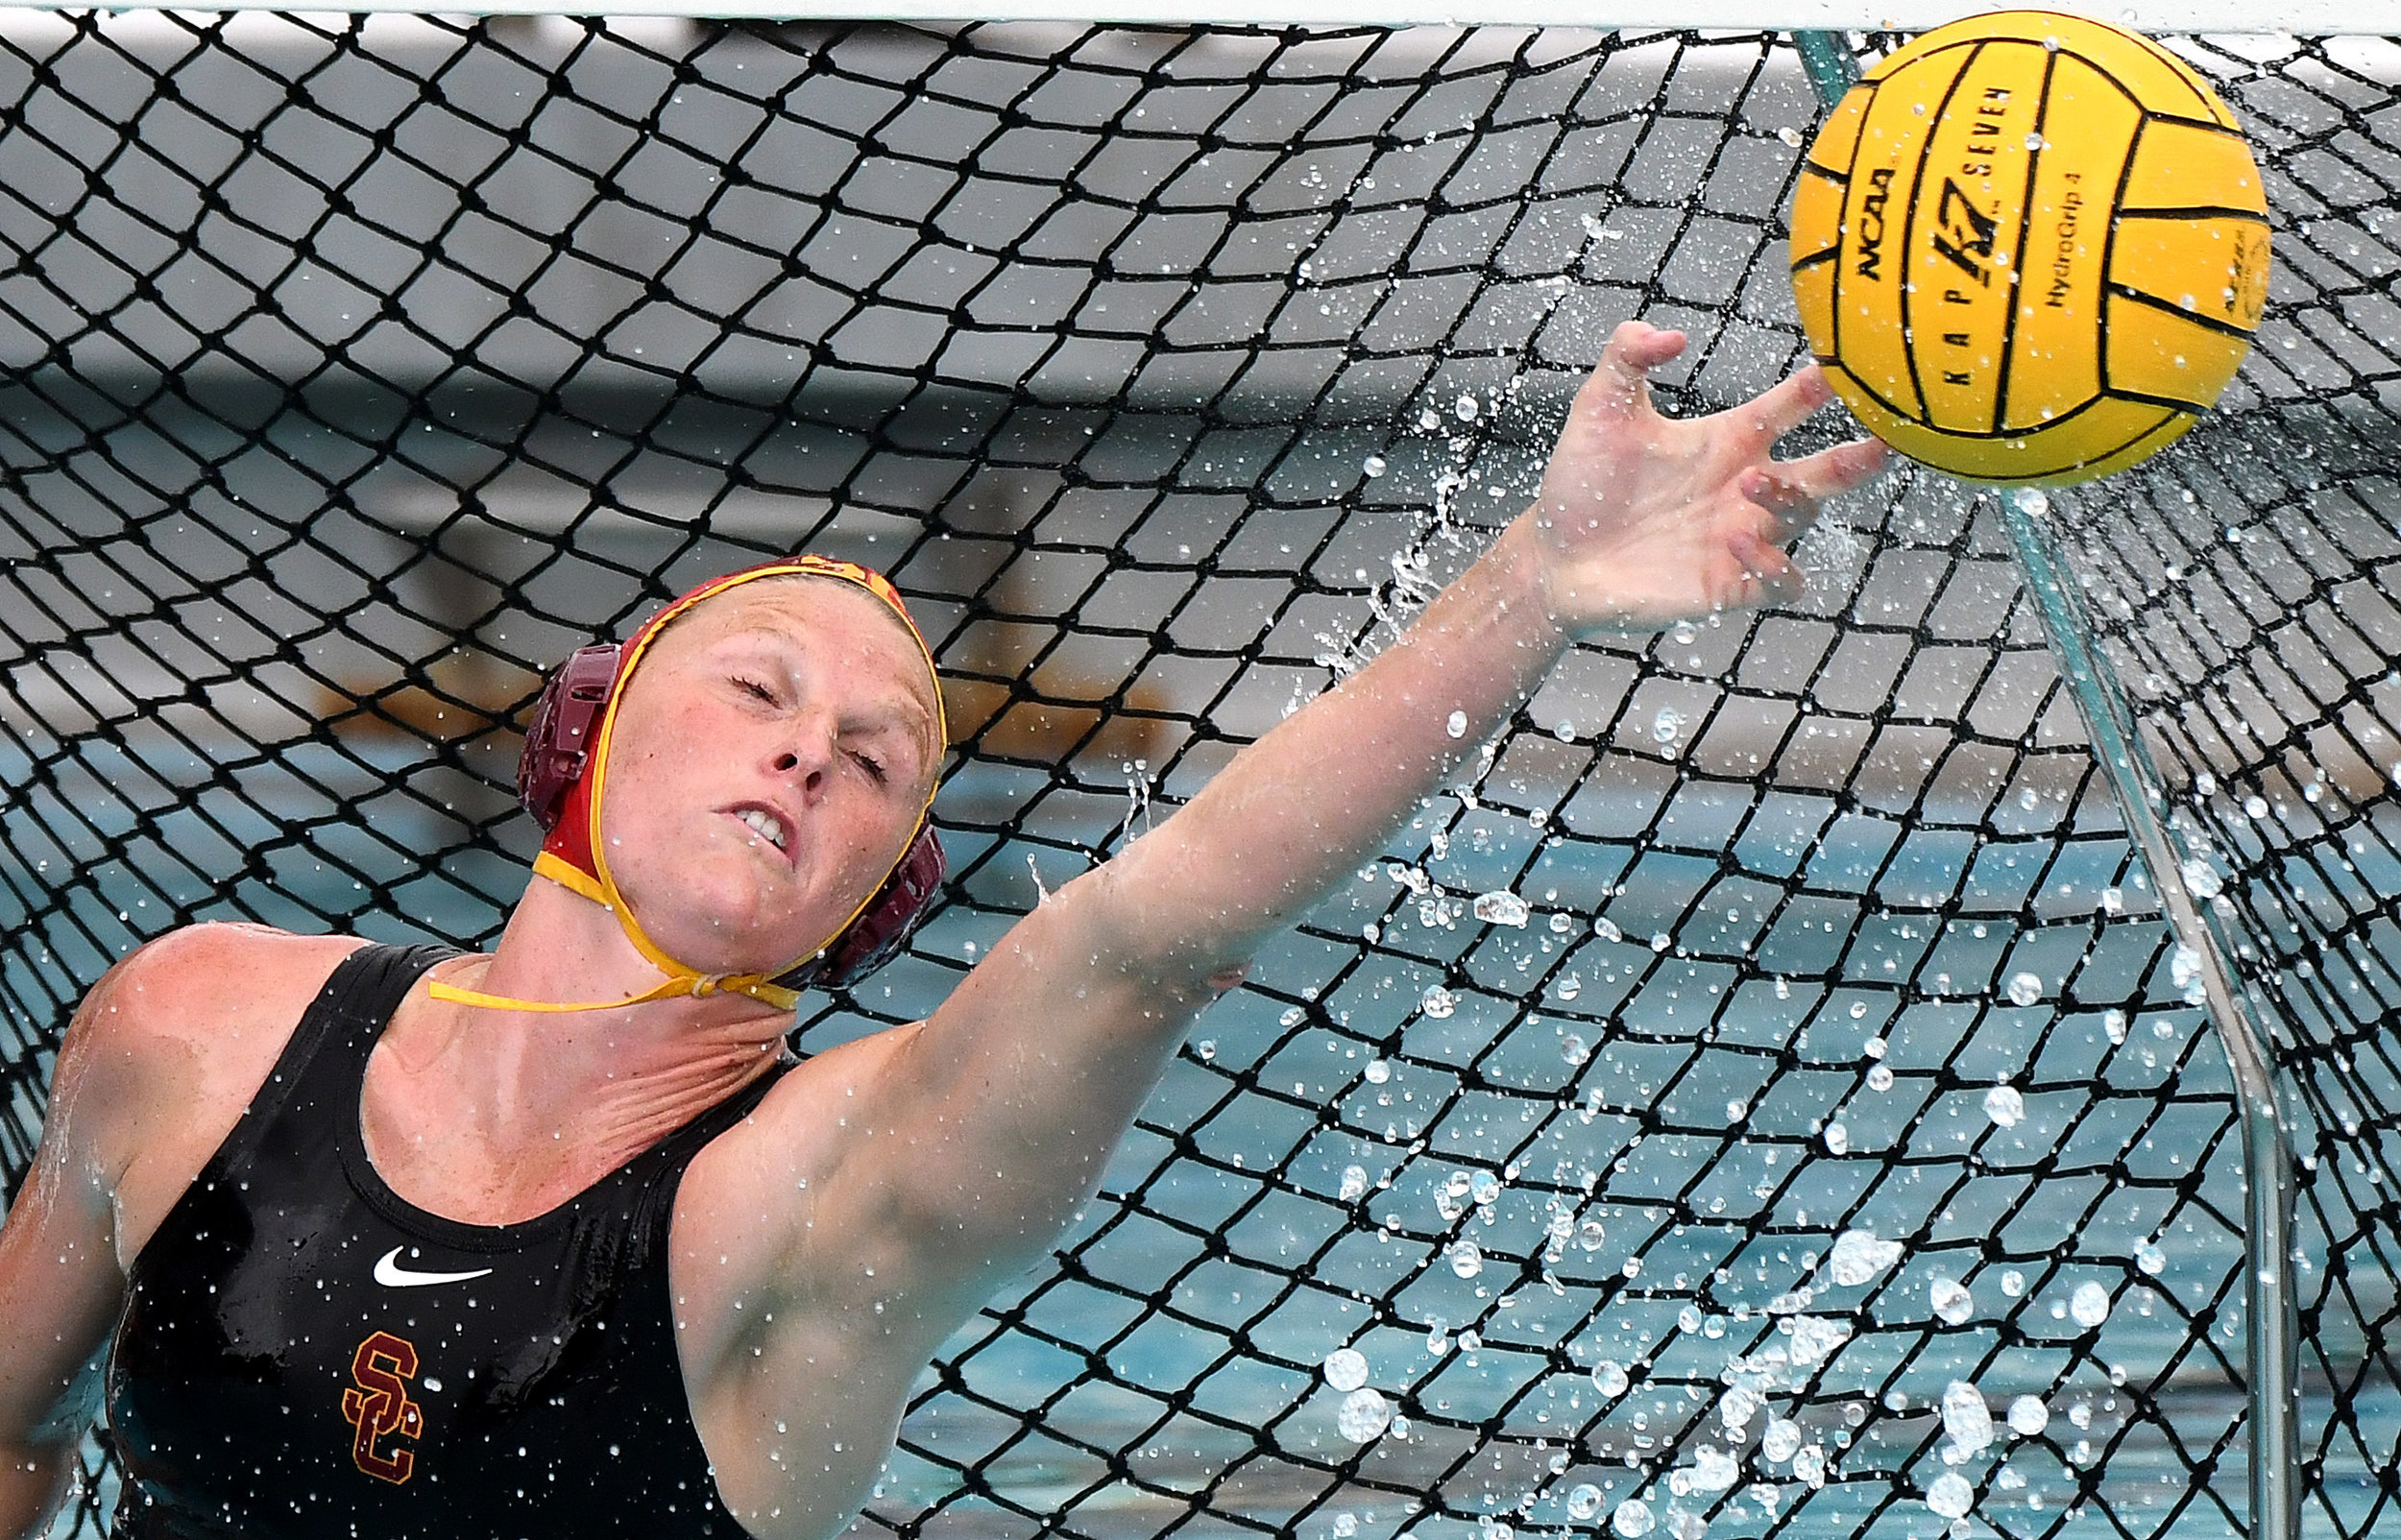 USC goalie Amanda londgran blocks a UCLA shot in the first half of a NCAA semifinal waterpolo match at the Uytengsu Aquatics Center on the campus of the University of Southern California on Saturday, May 12, 2018 in Los Angeles.